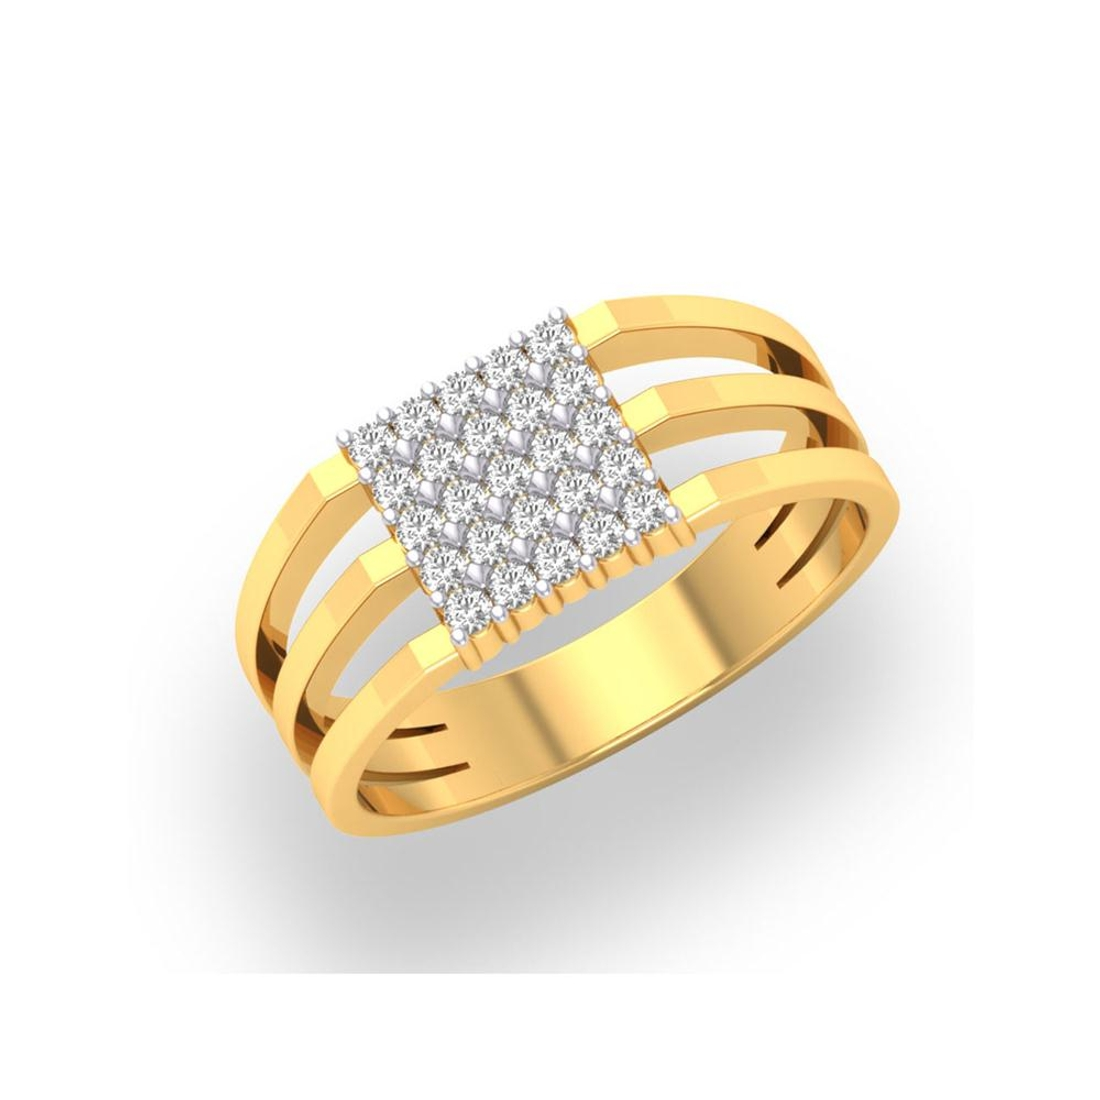 Charu Jewels Diamond Ring Made with 5.02 Gms 18 Kt Yellow Gold And 0.36 Carat Diamonds